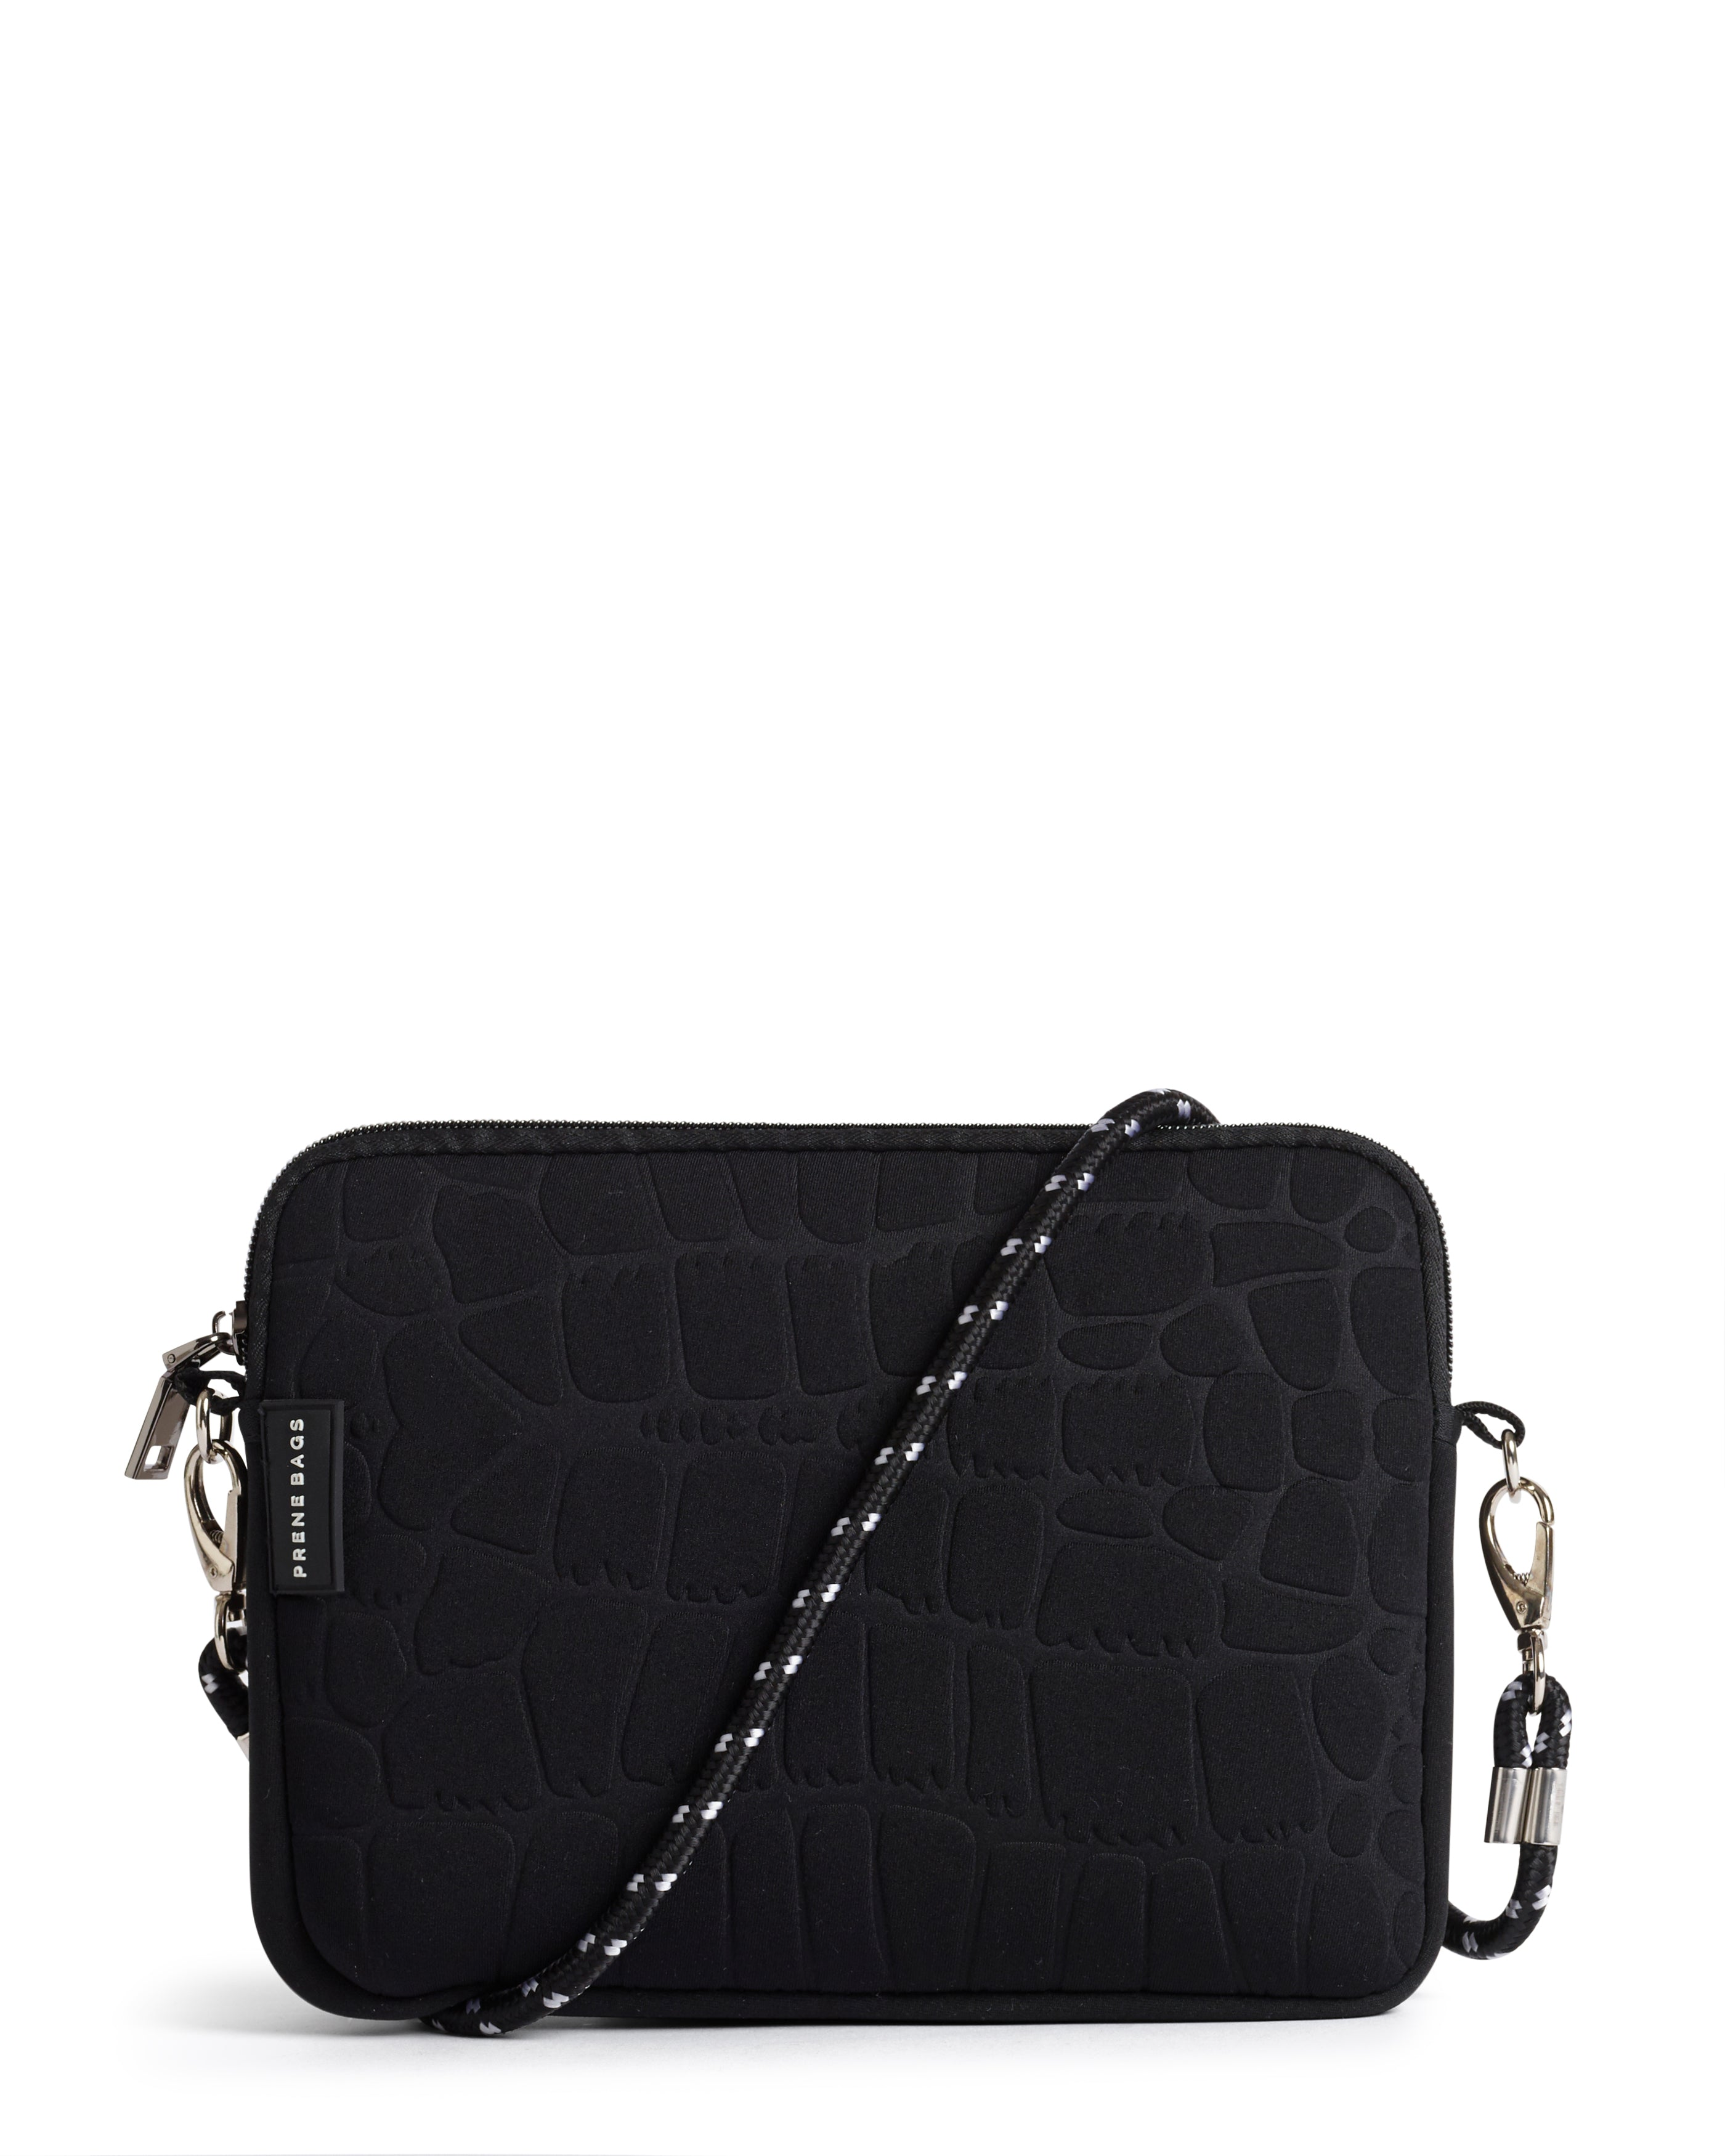 THE WILD PIXIE BAG (BLACK CROC) NEOPRENE CROSS BODY